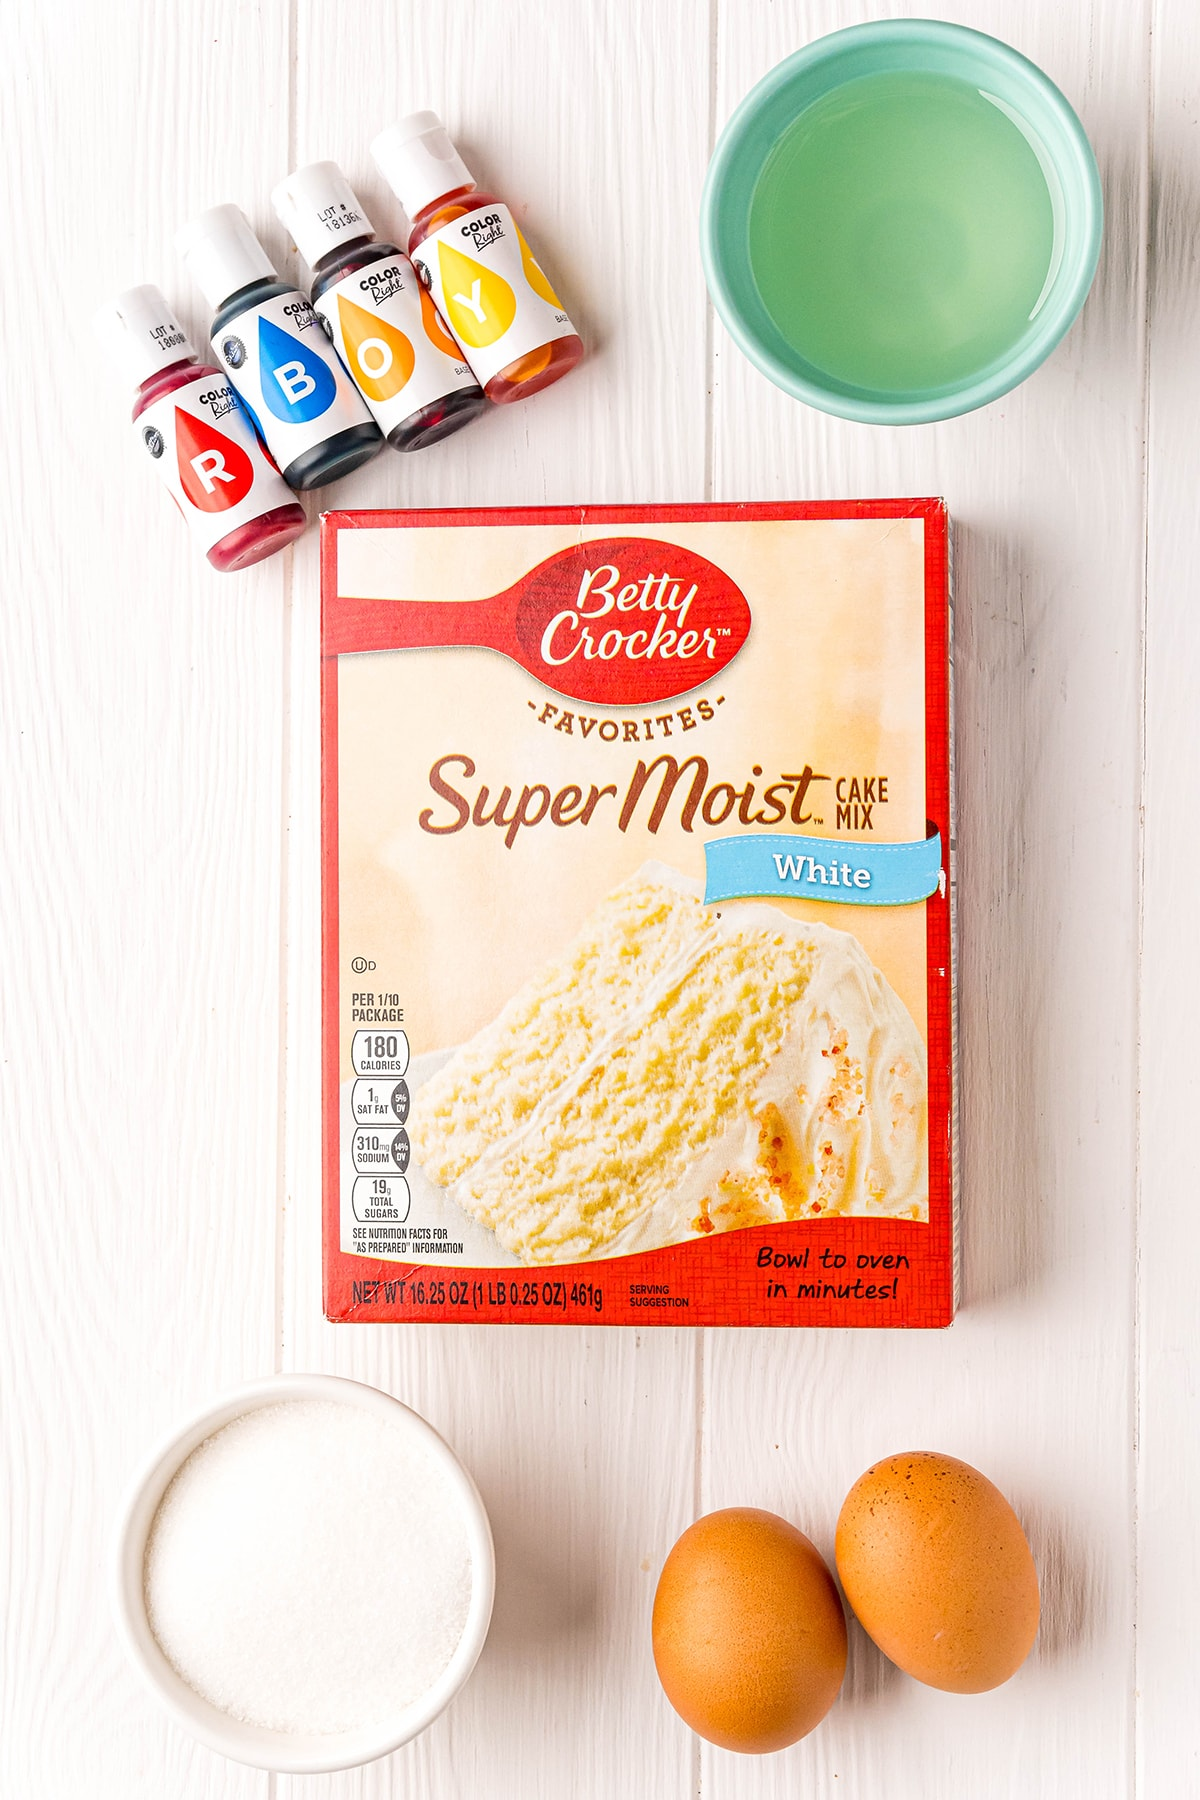 The ingredients needed to make cake mix cookies, a box of white cake mix, vegetable oil, eggs, granulated sugar, and food coloring.